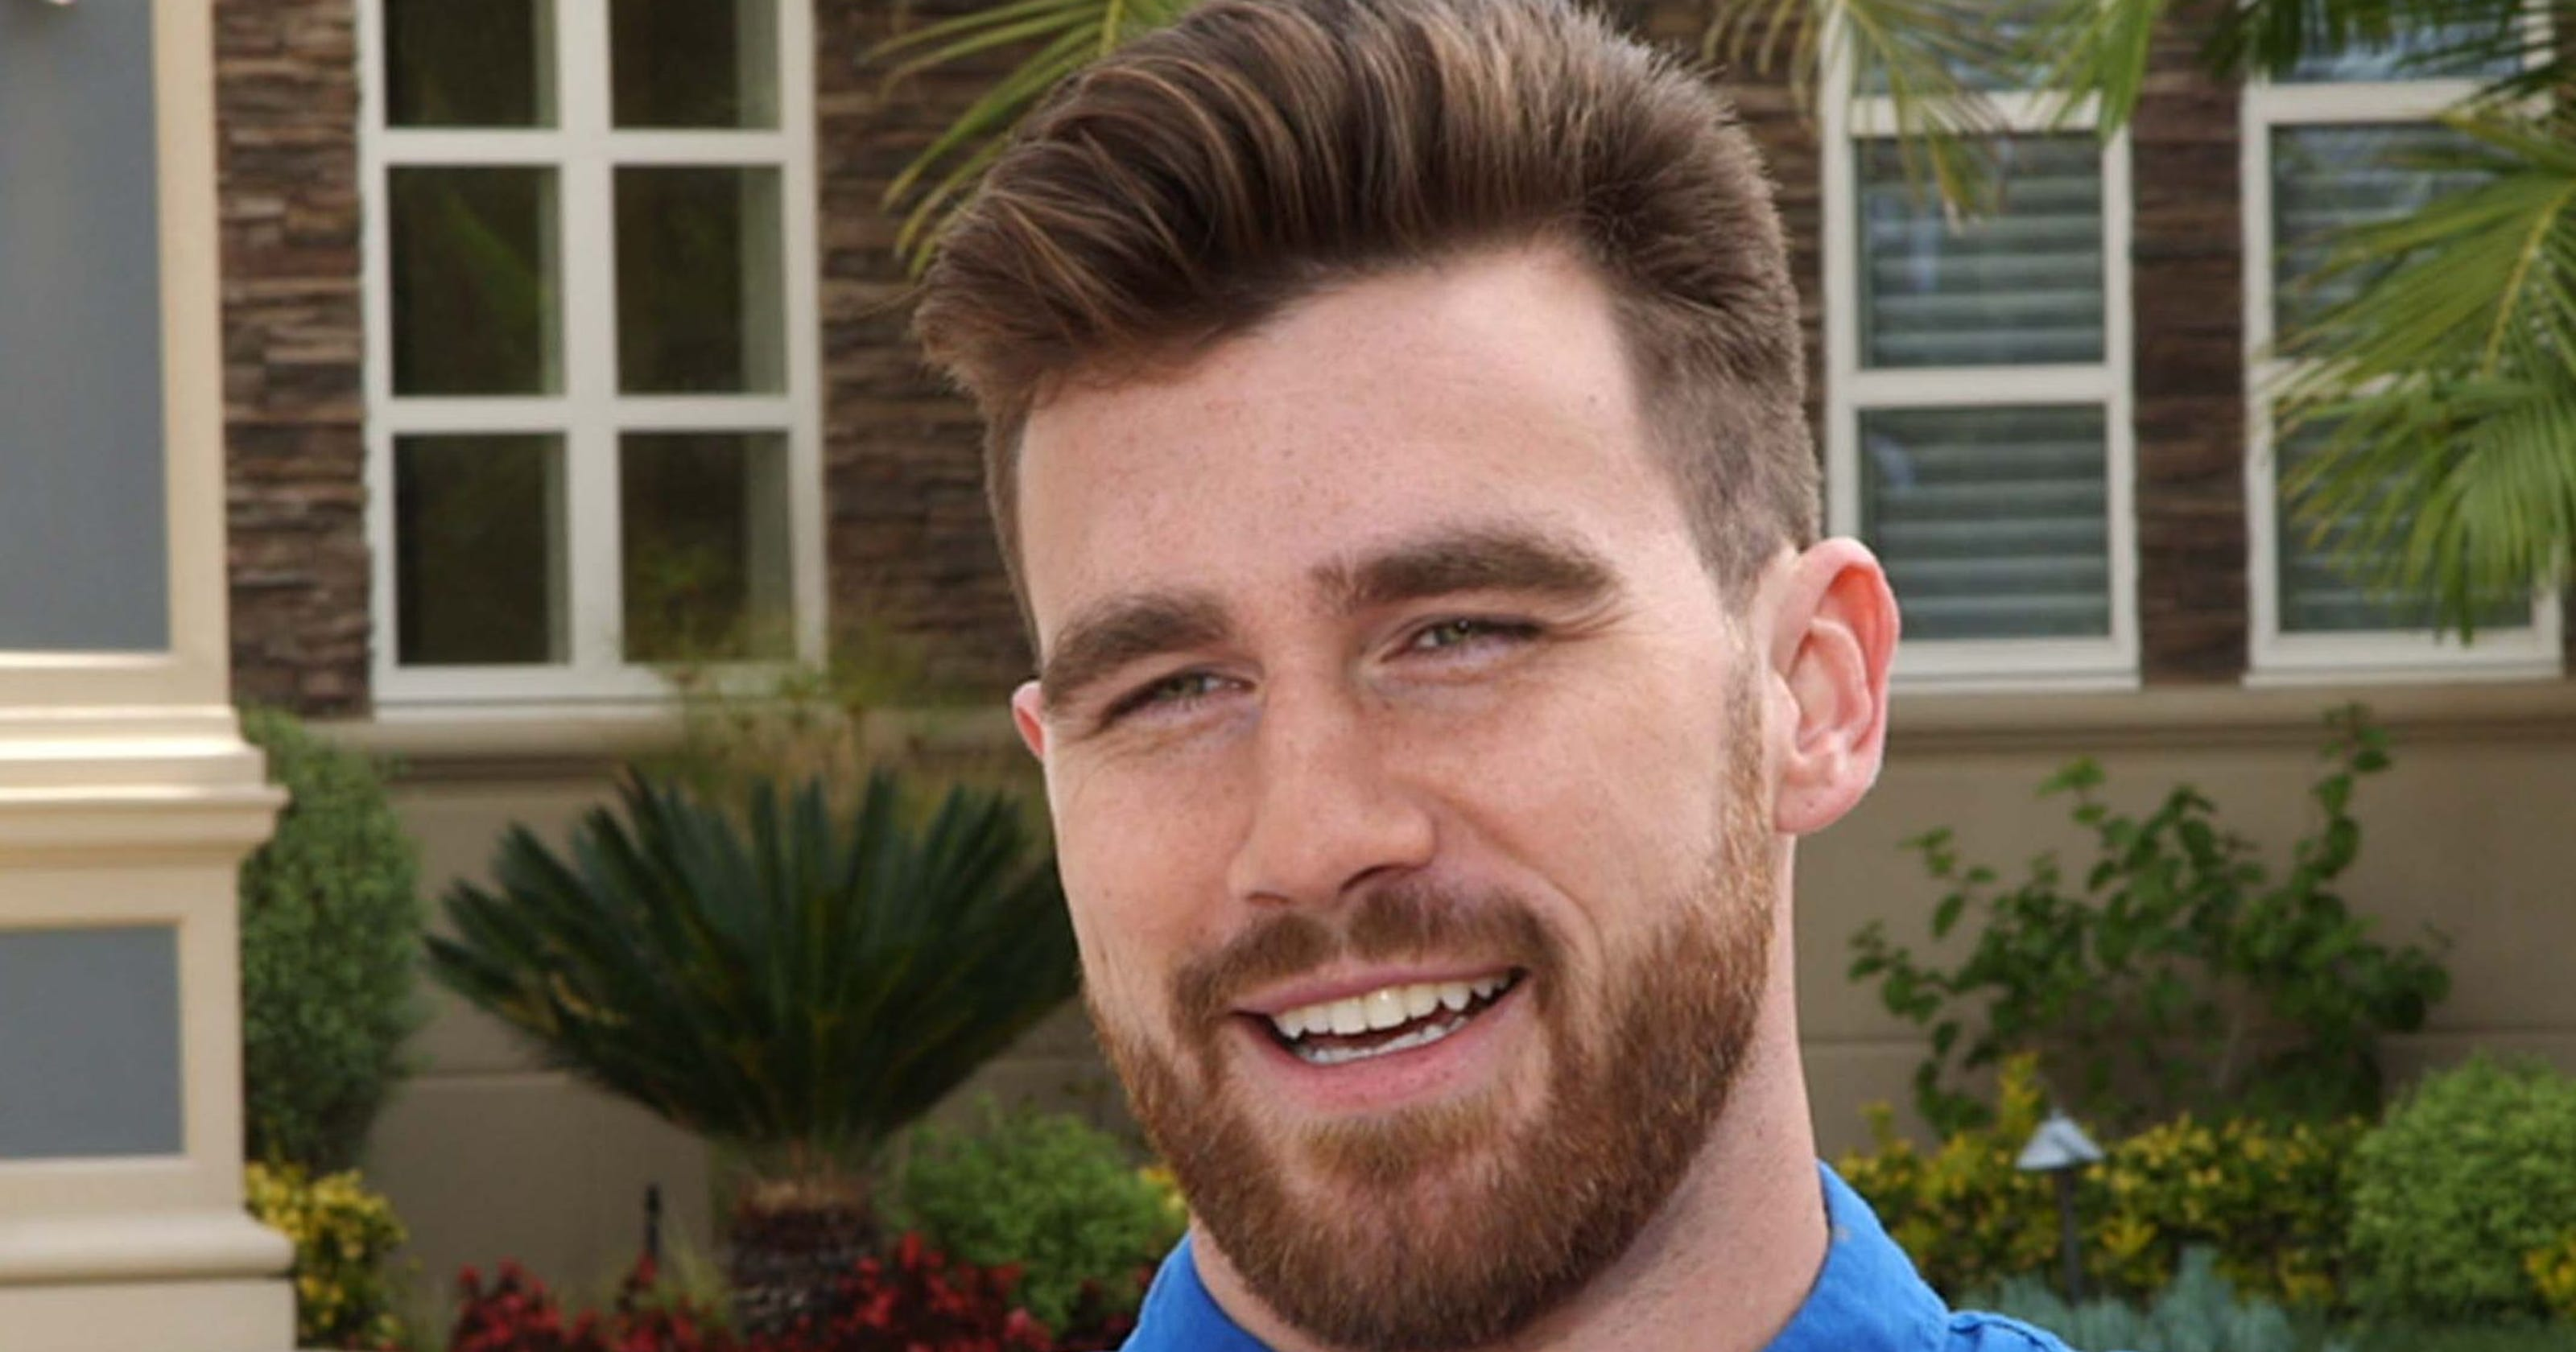 Travis Kelce Ethnicity, Race, and Nationality